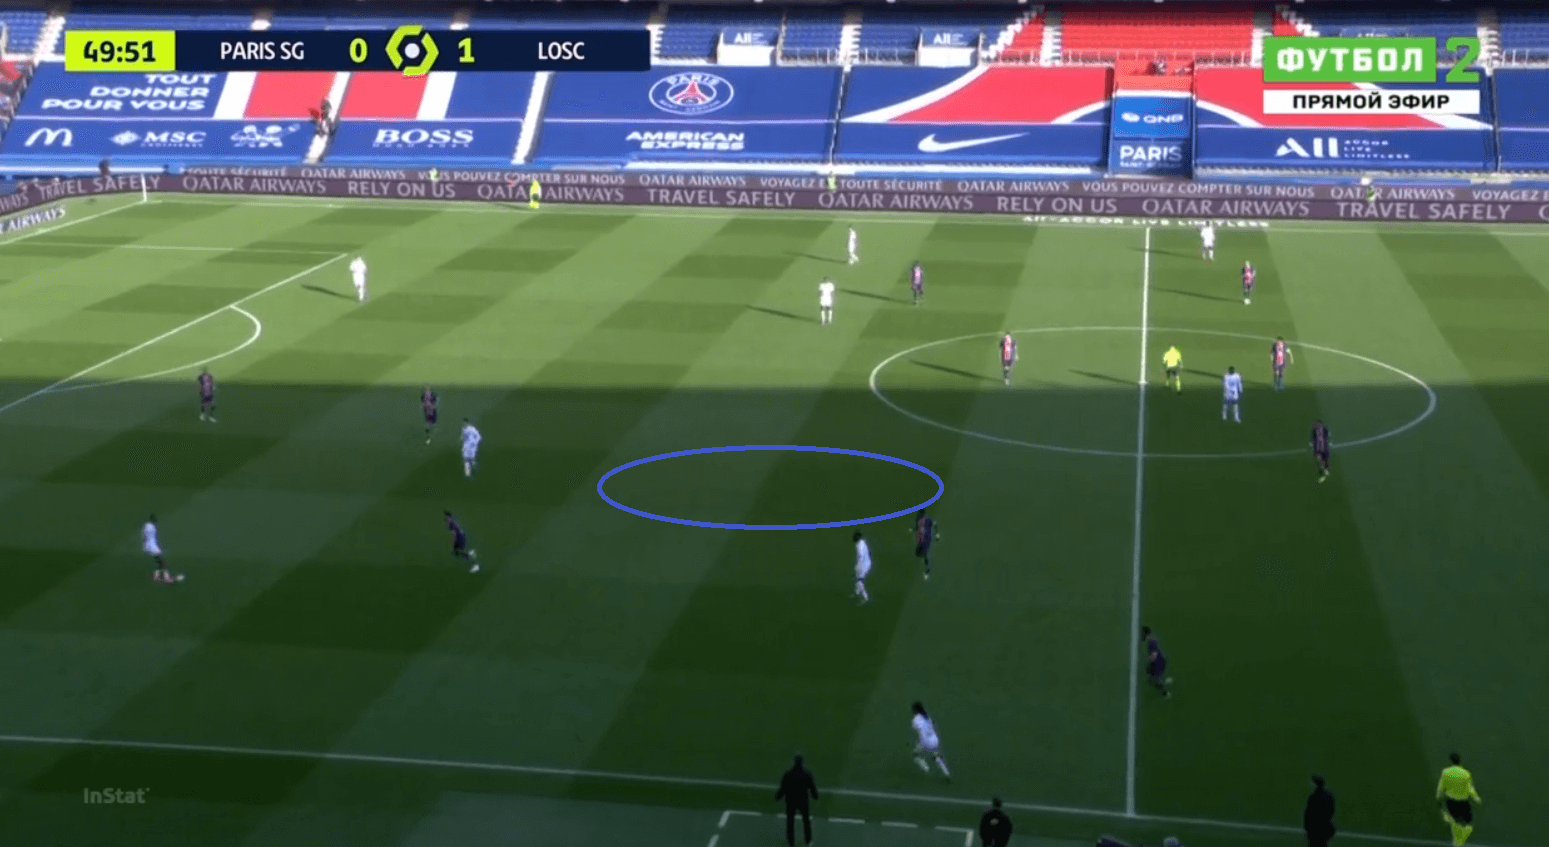 Lille's Low Block: How Les Dogues' defensive structure exposed PSG's ill-disciplined positional play - tactical analysis tactics